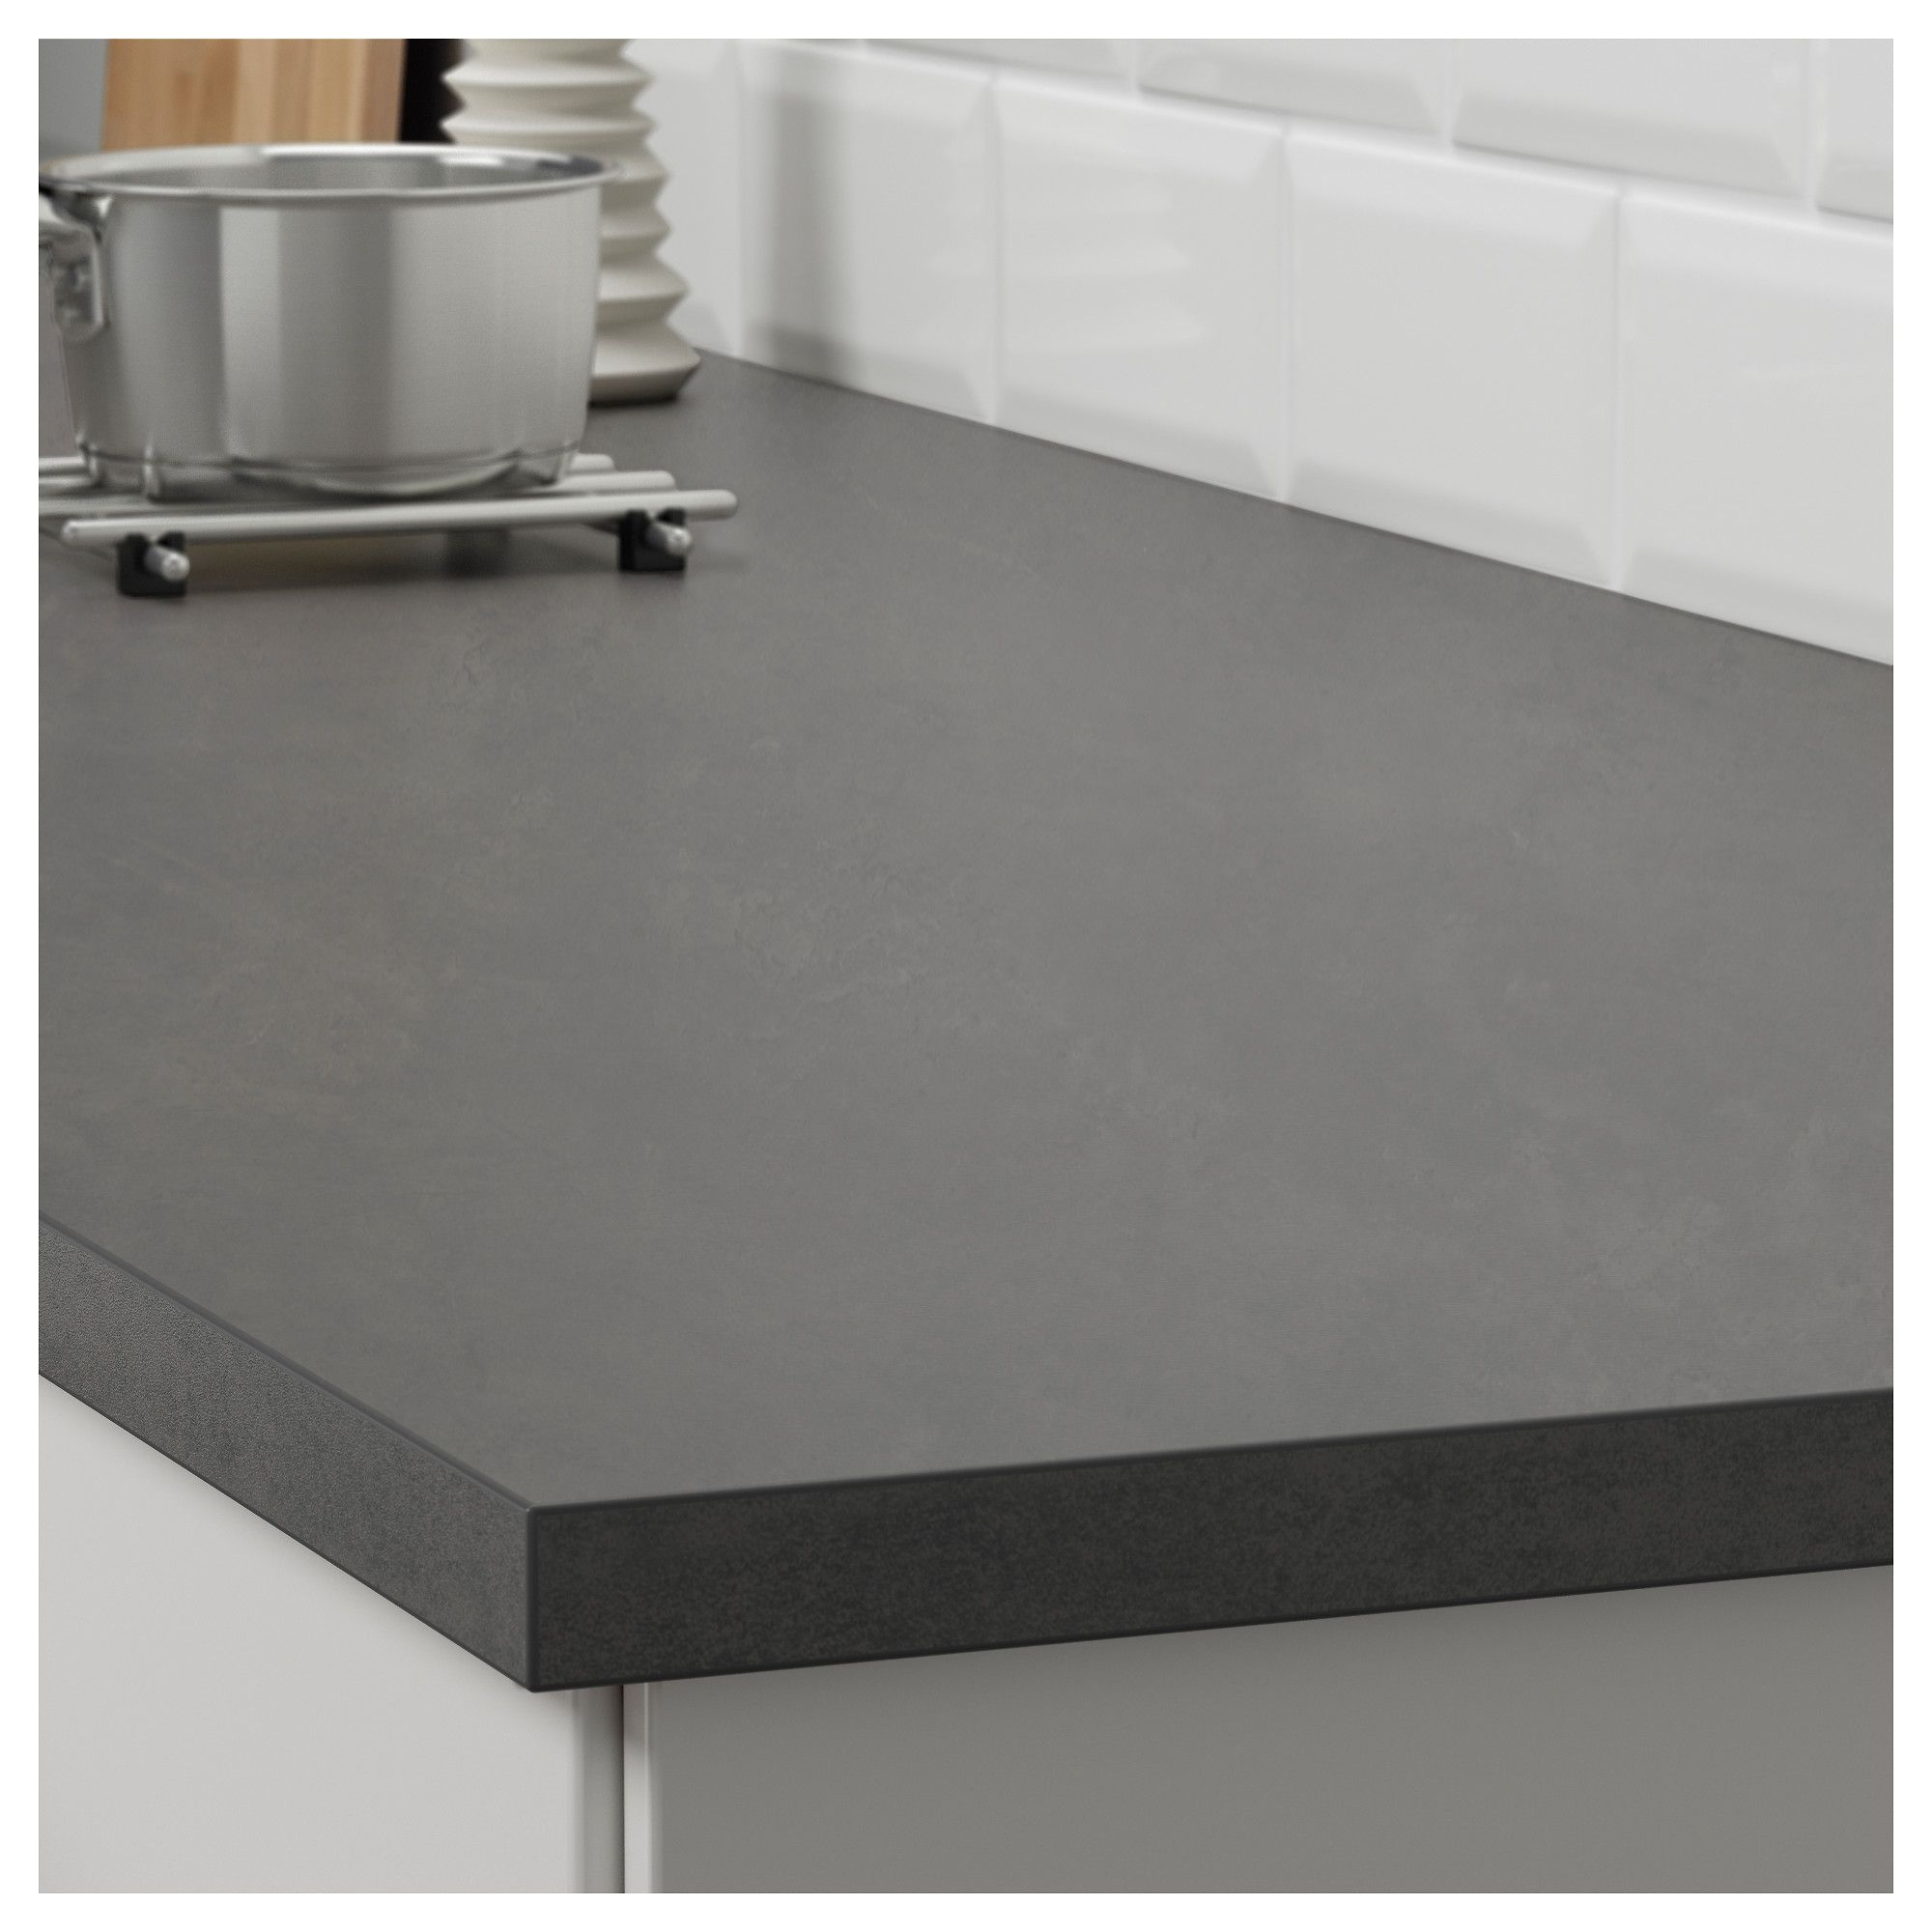 Incroyable Simulated Concrete Countertops From Ikea   Cheap!